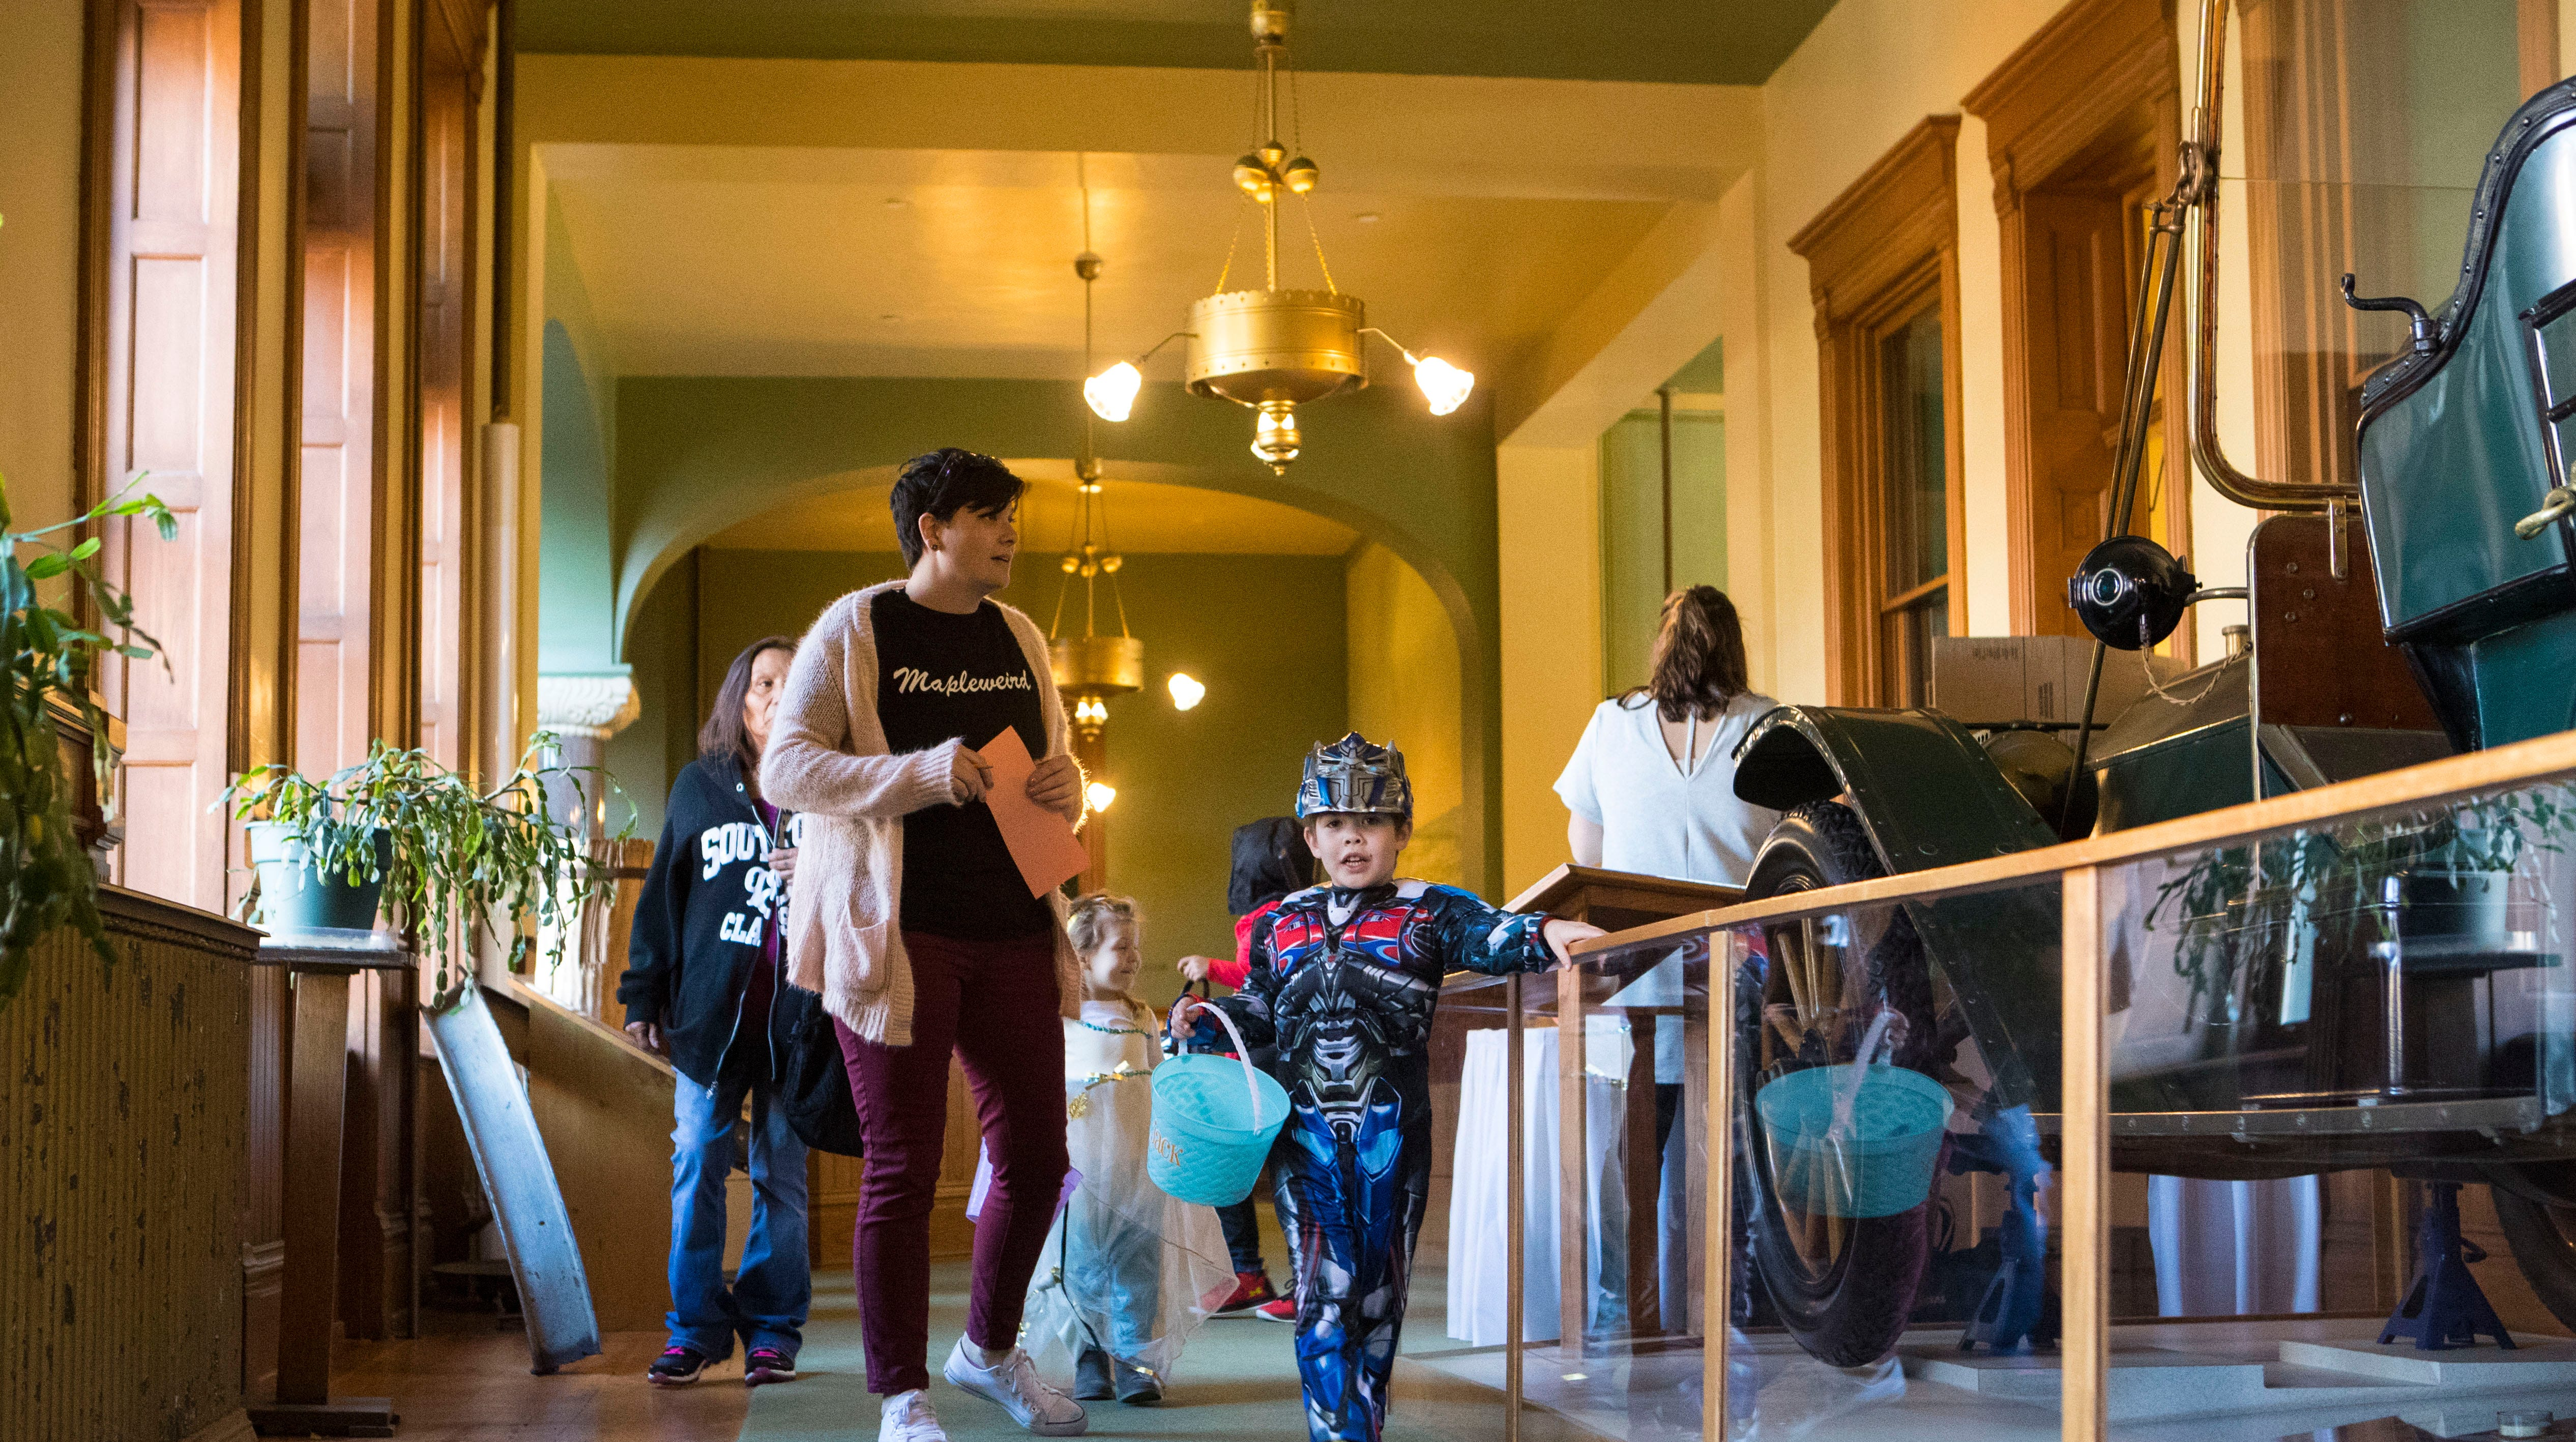 photos: halloween at the old courthouse museum